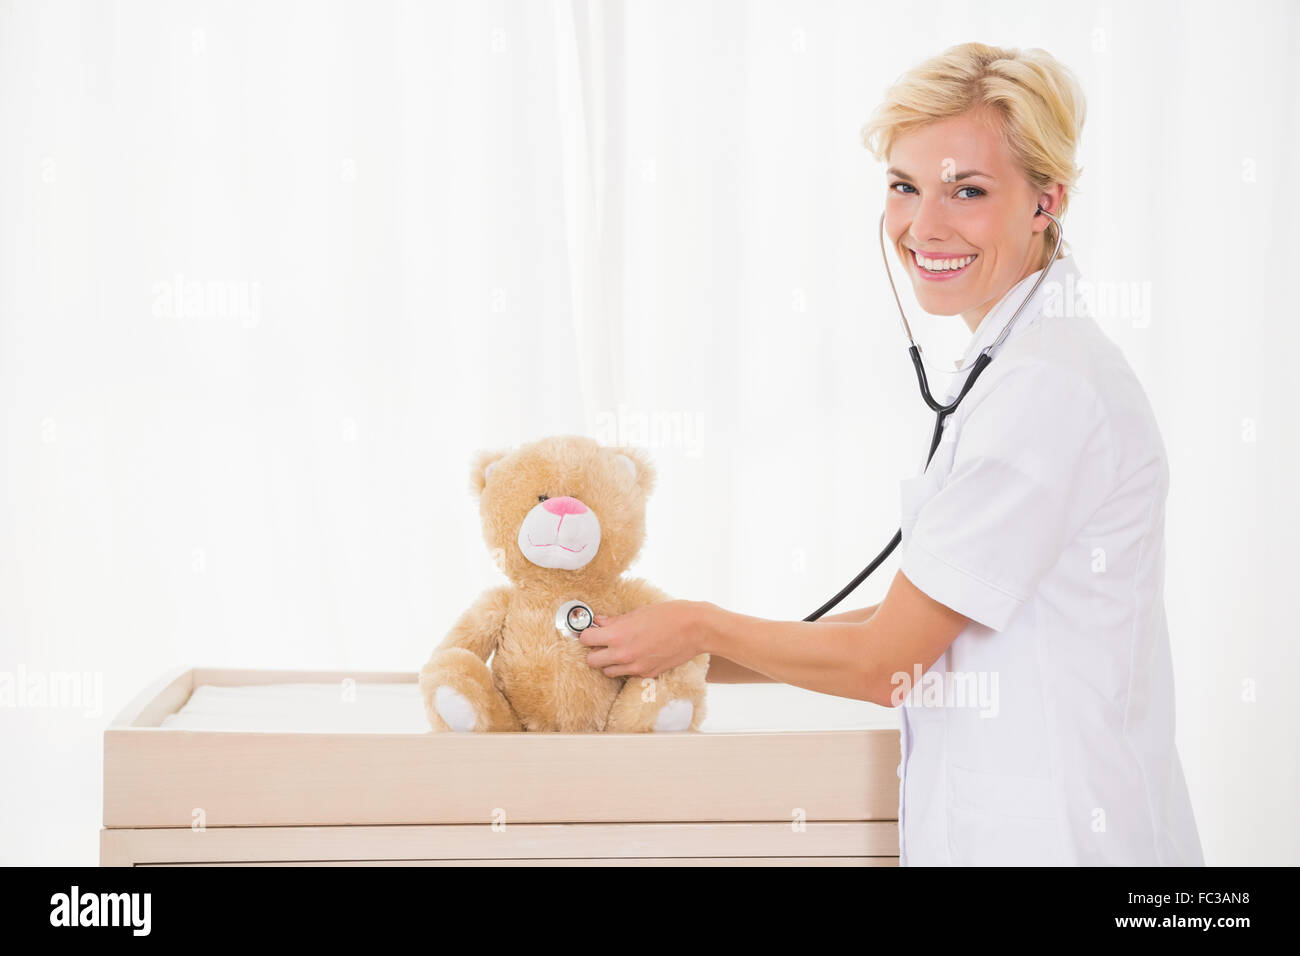 Smiling blonde doctor with stethoscope in the teddy bear - Stock Image